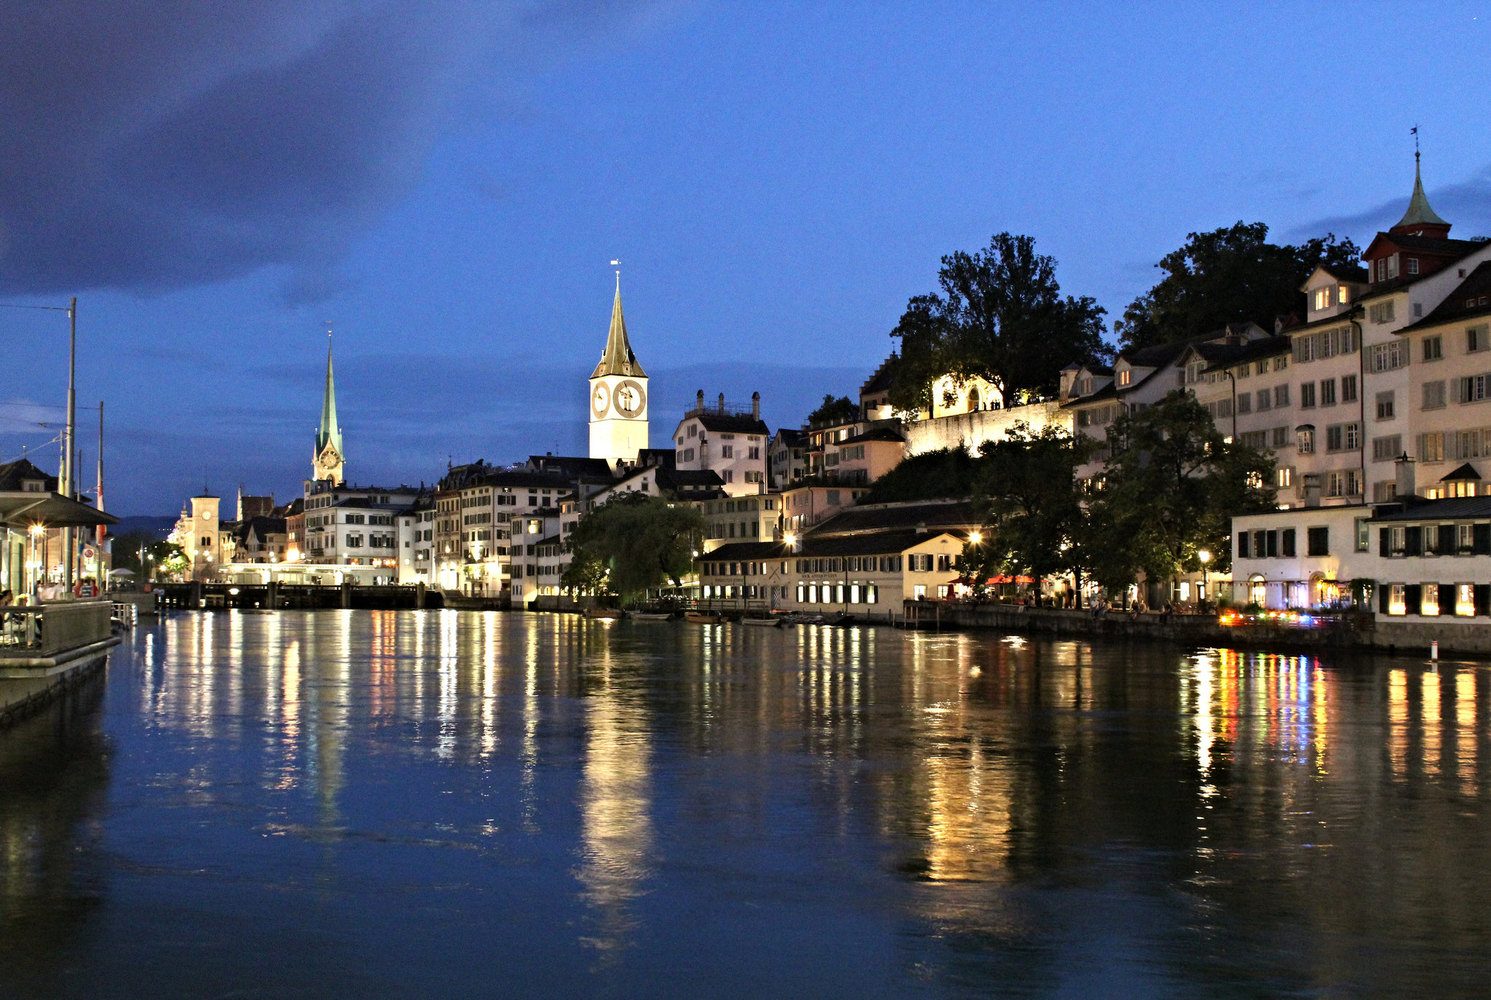 Zurich/Switzerland